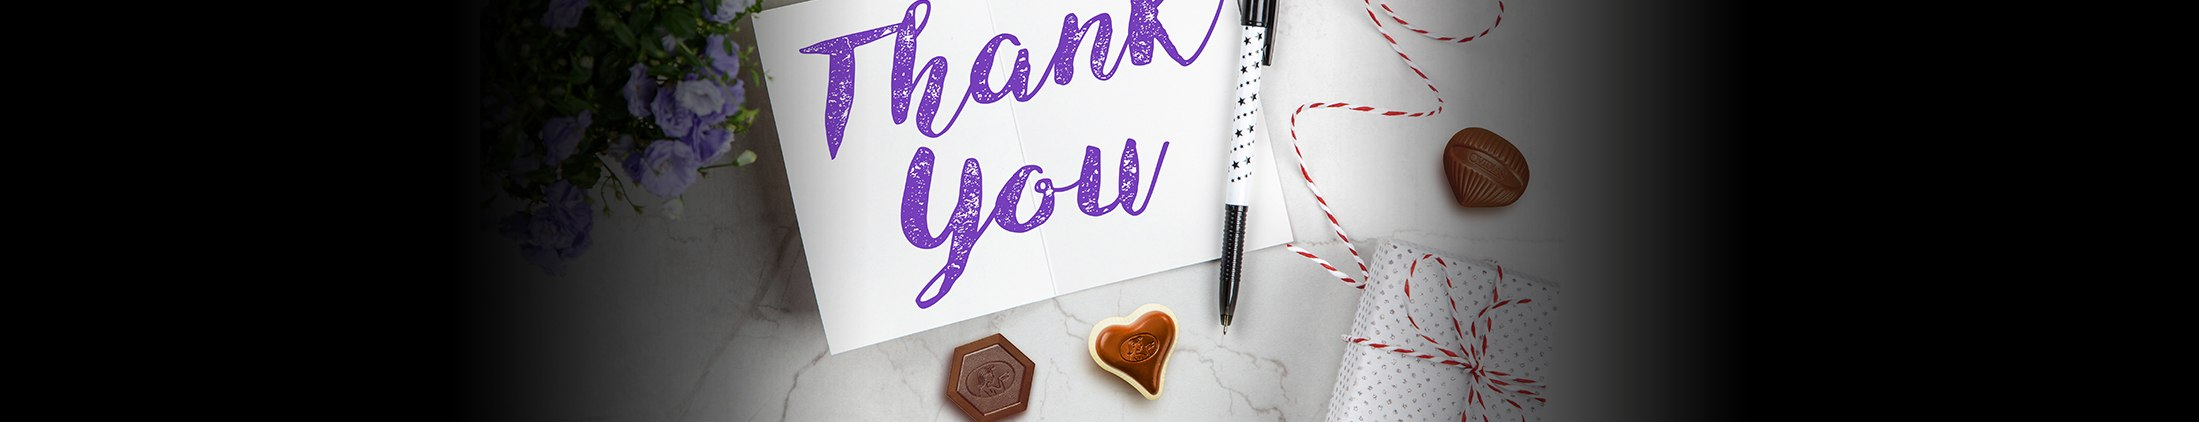 Chocolate thank you gifts for every occasion